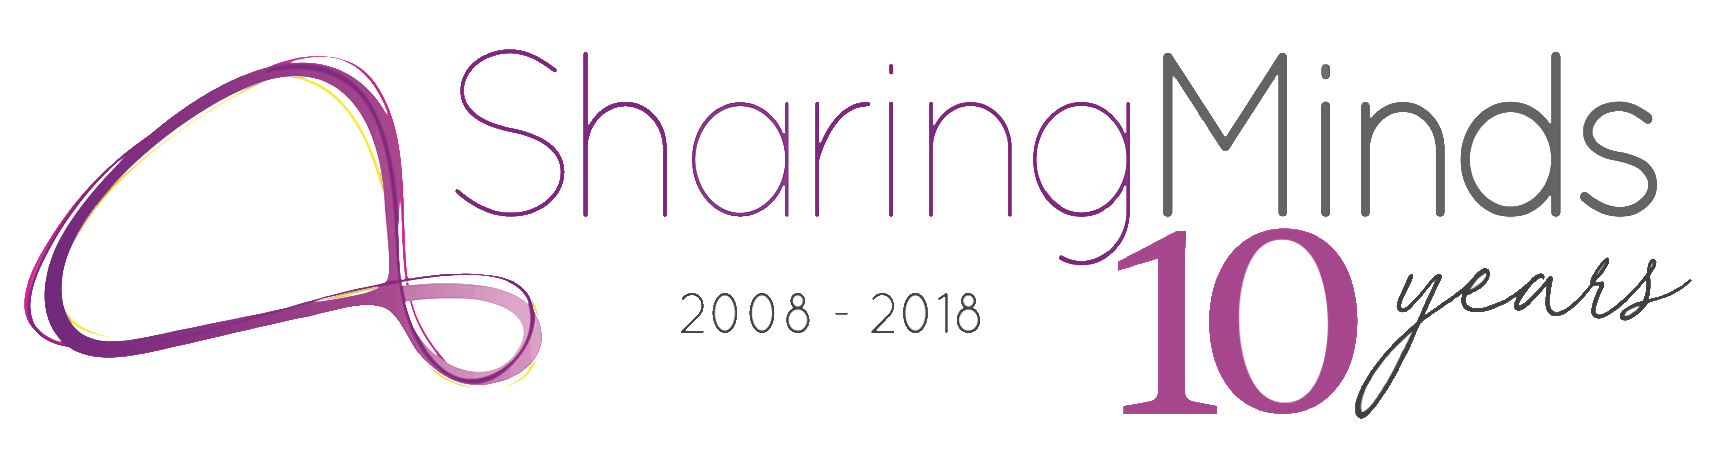 Sharing Minds - celebrating 10 years